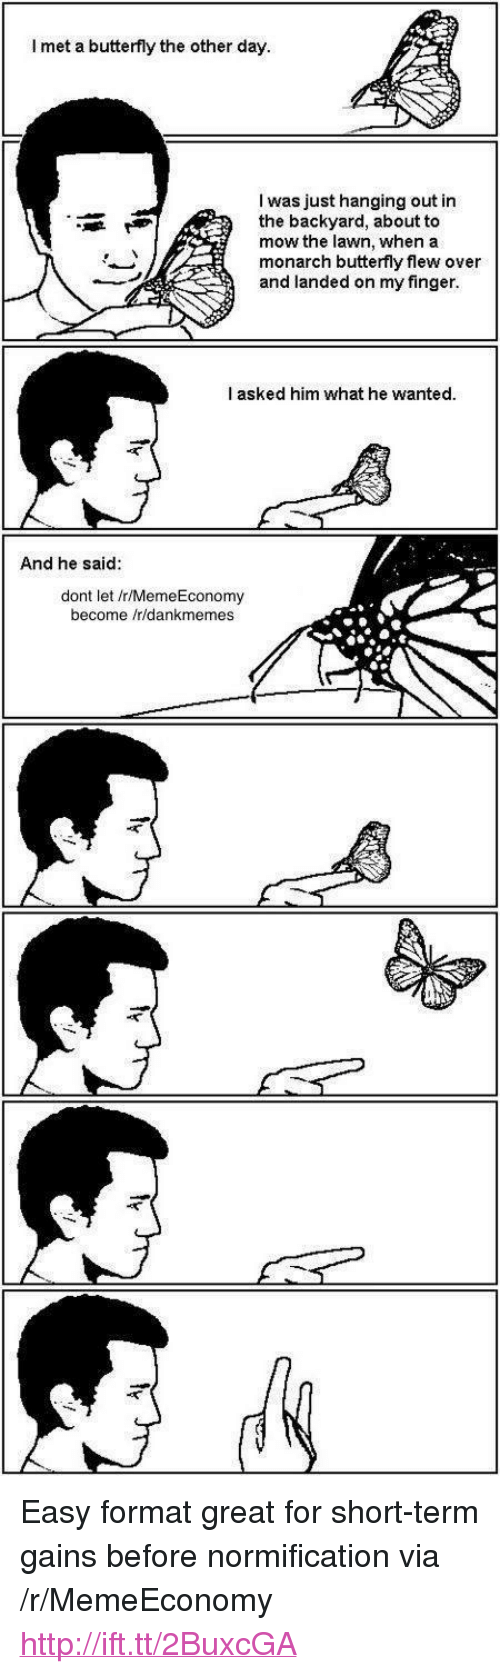 """Butterfly, Http, and Wanted: I met a butterfly the other day.  I was just hanging out in  the backyard, about to  mow the lawn, when a  monarch butterfly flew over  and landed on my finger  I asked him what he wanted  And he said:  dont let /r/MemeEconomy  become /r/dankmemes <p>Easy format great for short-term gains before normification via /r/MemeEconomy <a href=""""http://ift.tt/2BuxcGA"""">http://ift.tt/2BuxcGA</a></p>"""